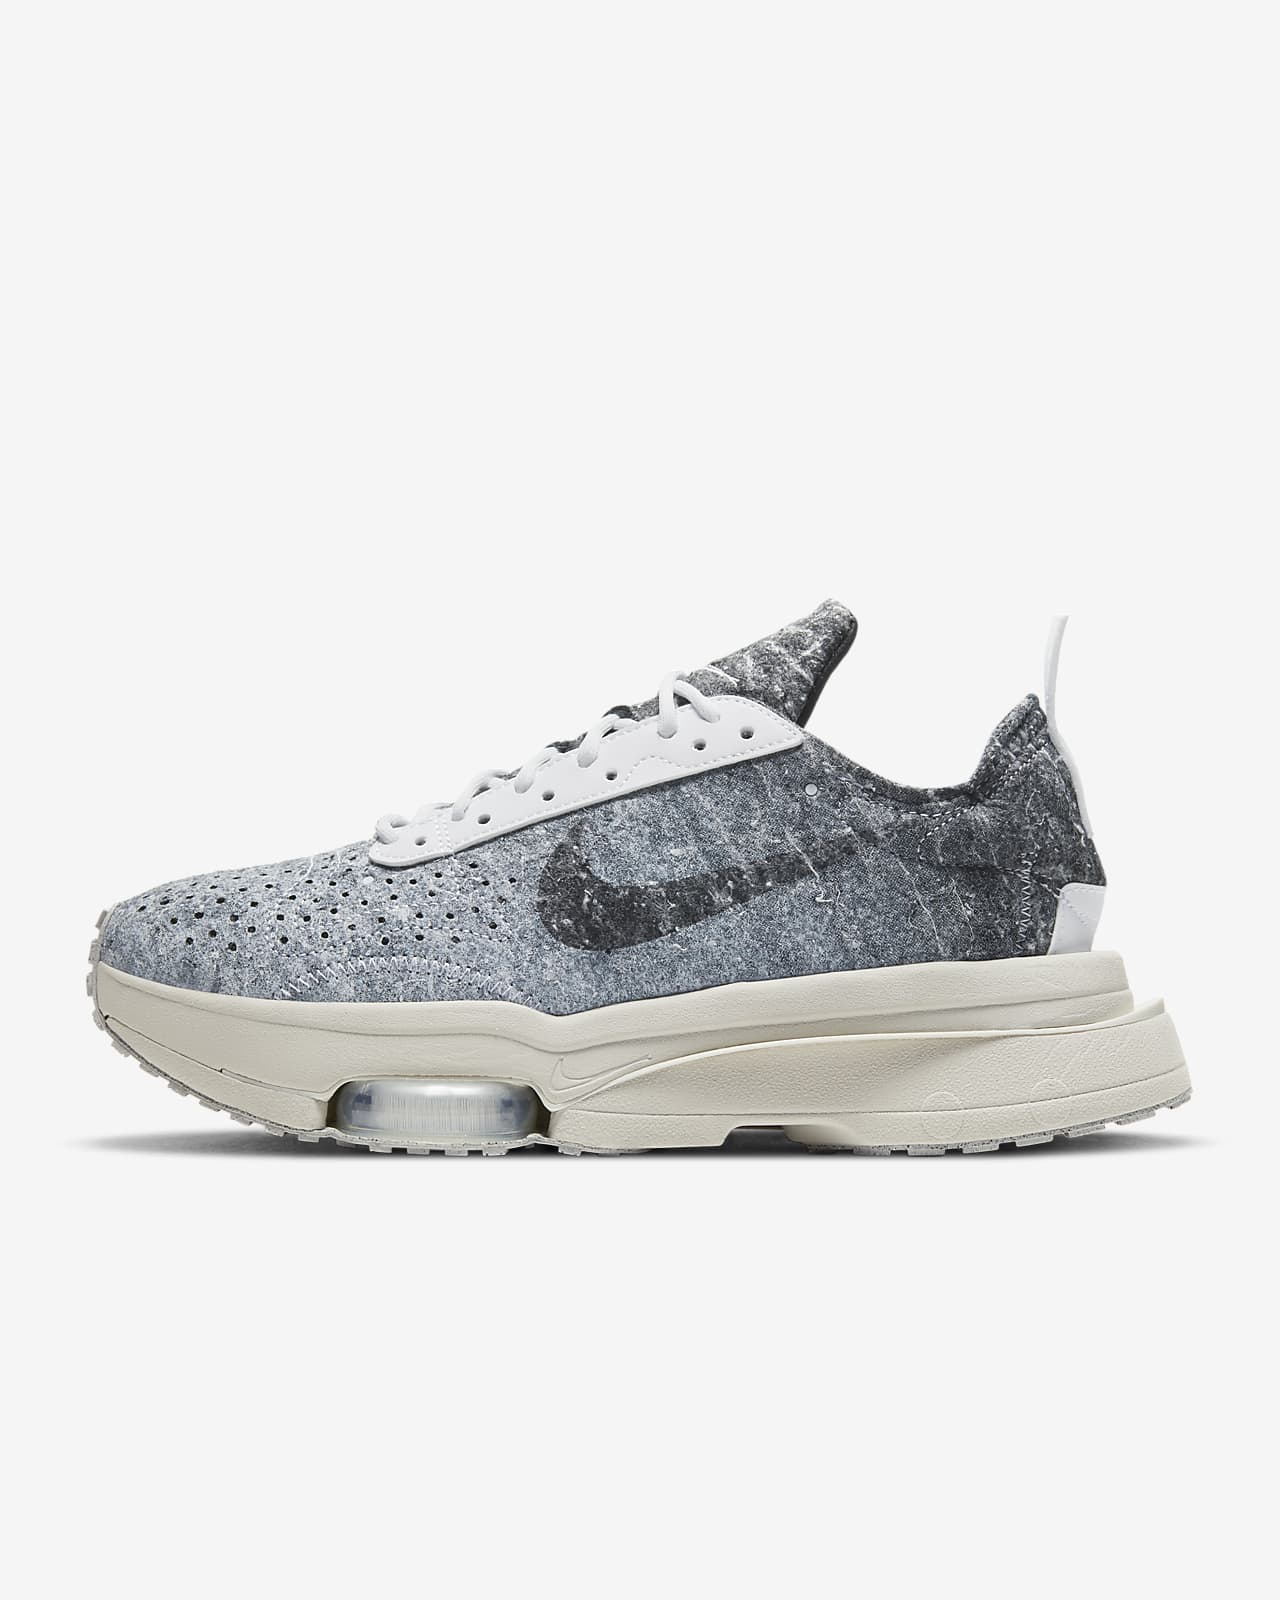 Nike Air Zoom-Type SE Women's Shoes